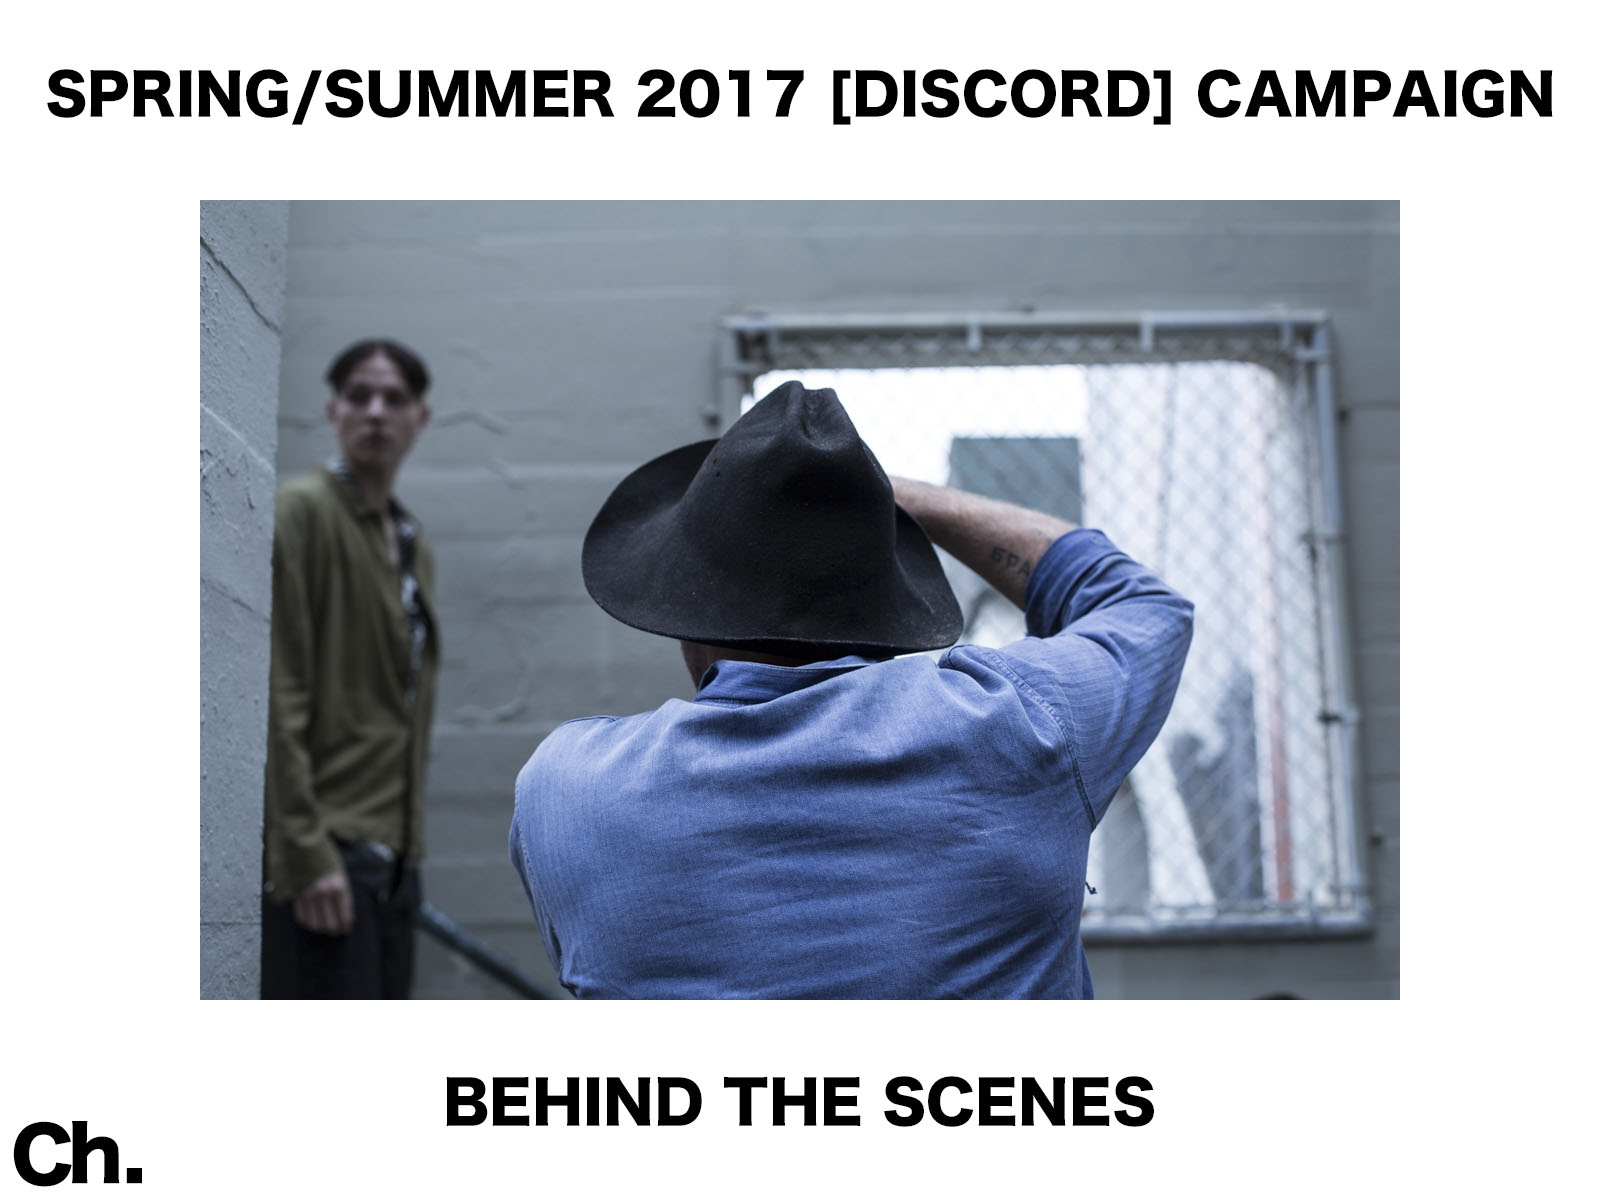 BEHIND THE SCENES:  CHAPTER SPRING/SUMMER 2017 [DISCORD] CAMPAIGN